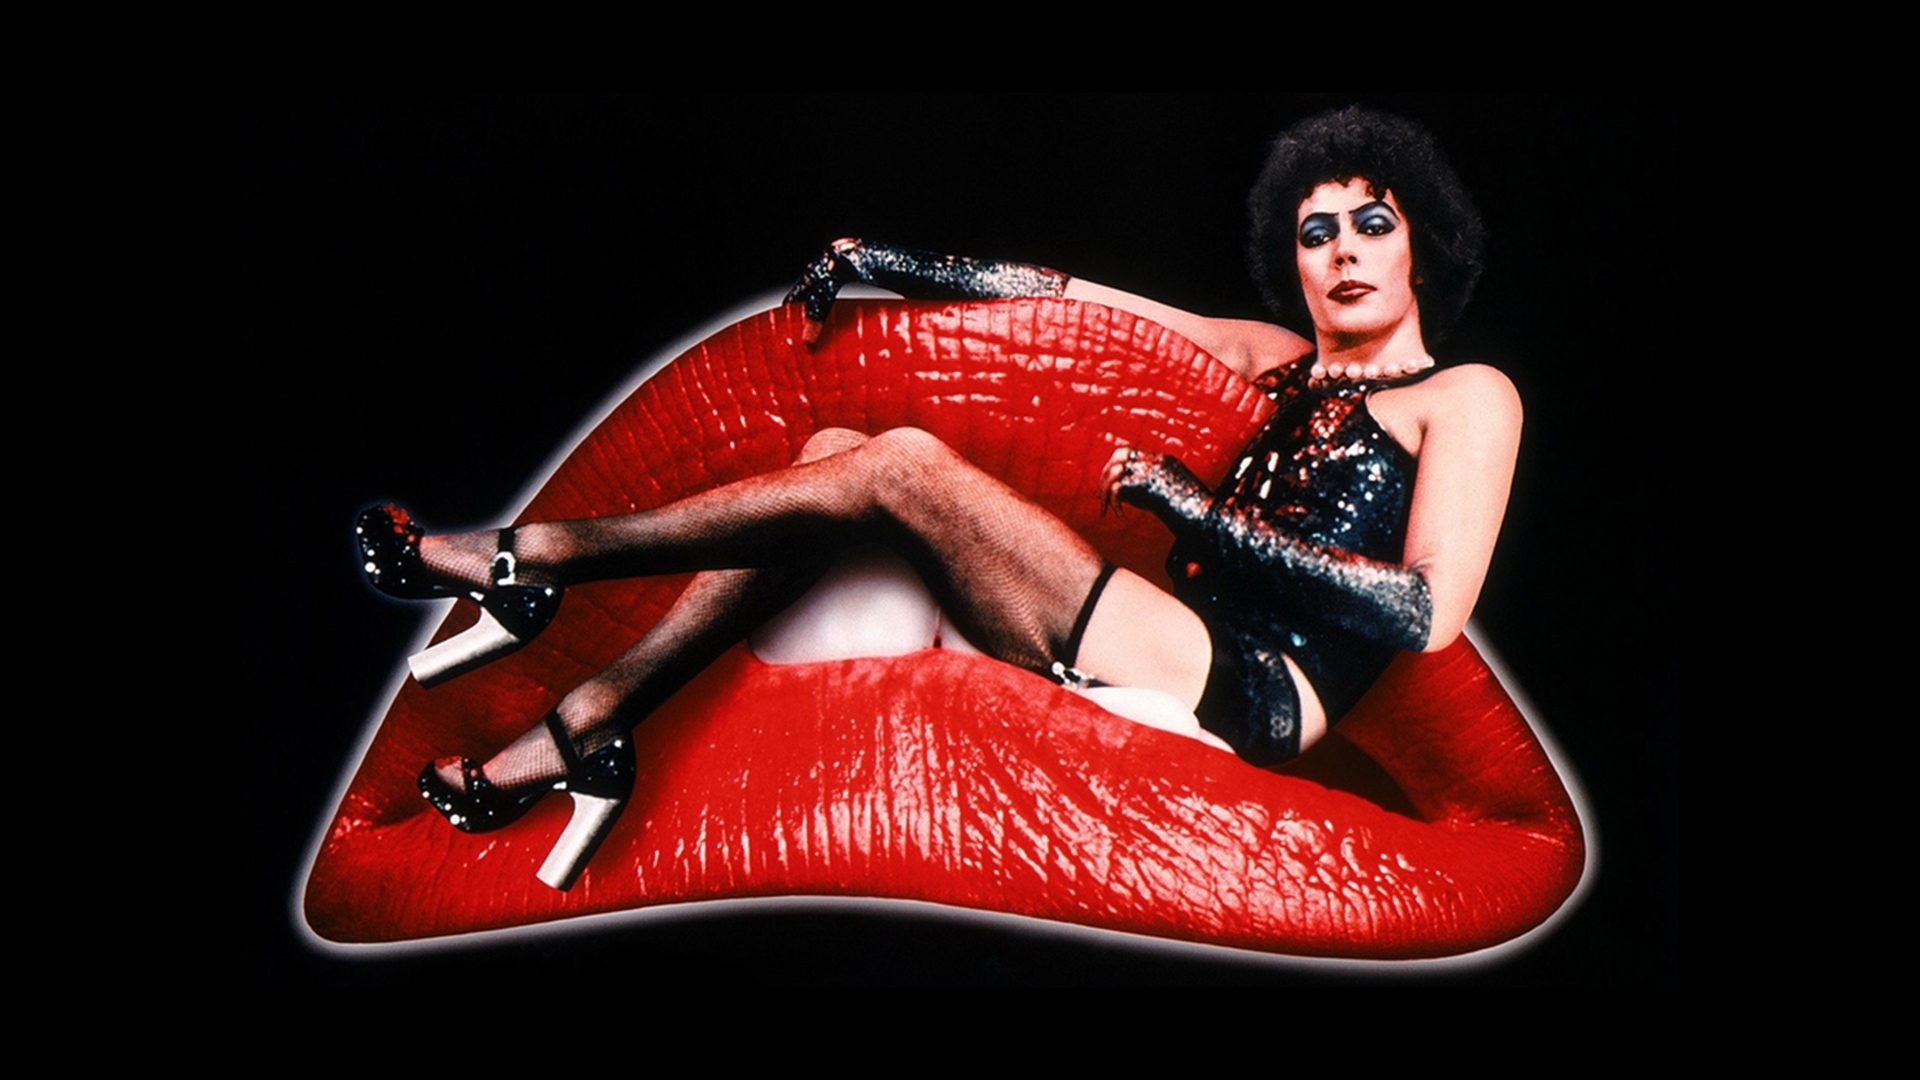 Susan sarandon nell campbell in the rocky horror picture show 1975 - 3 7